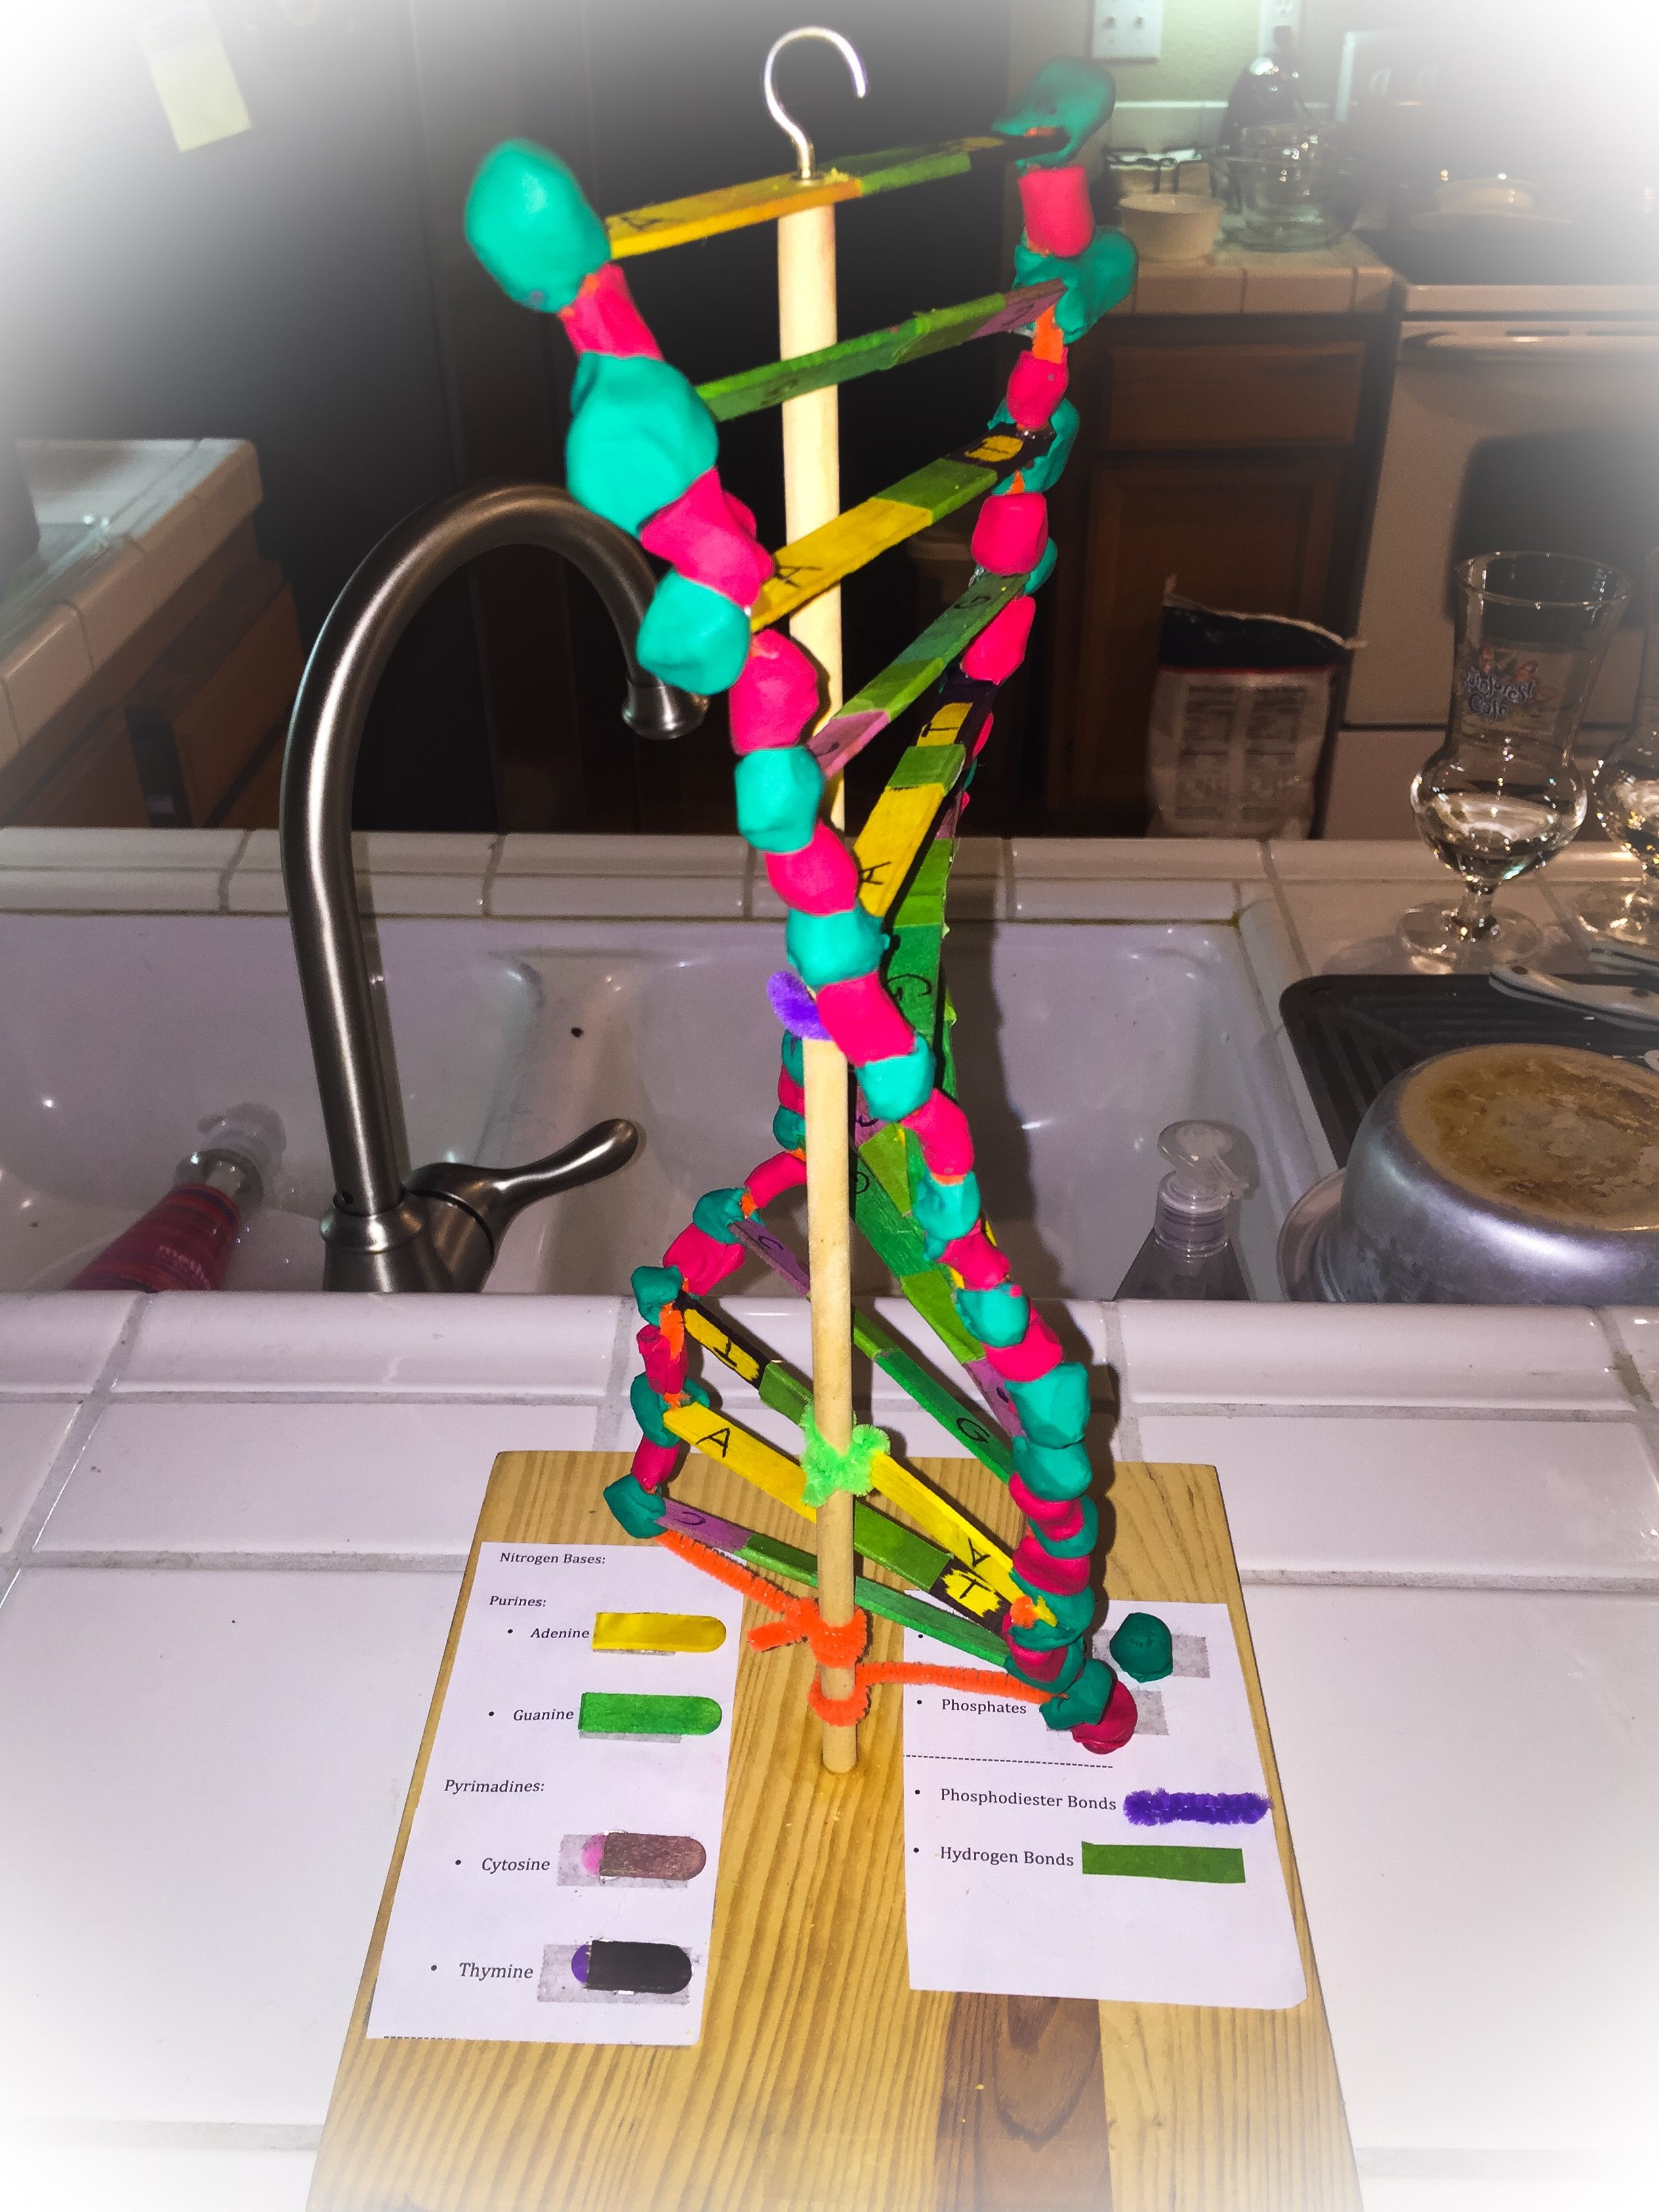 Dna 3d Project For High School My Son Used Popsicle